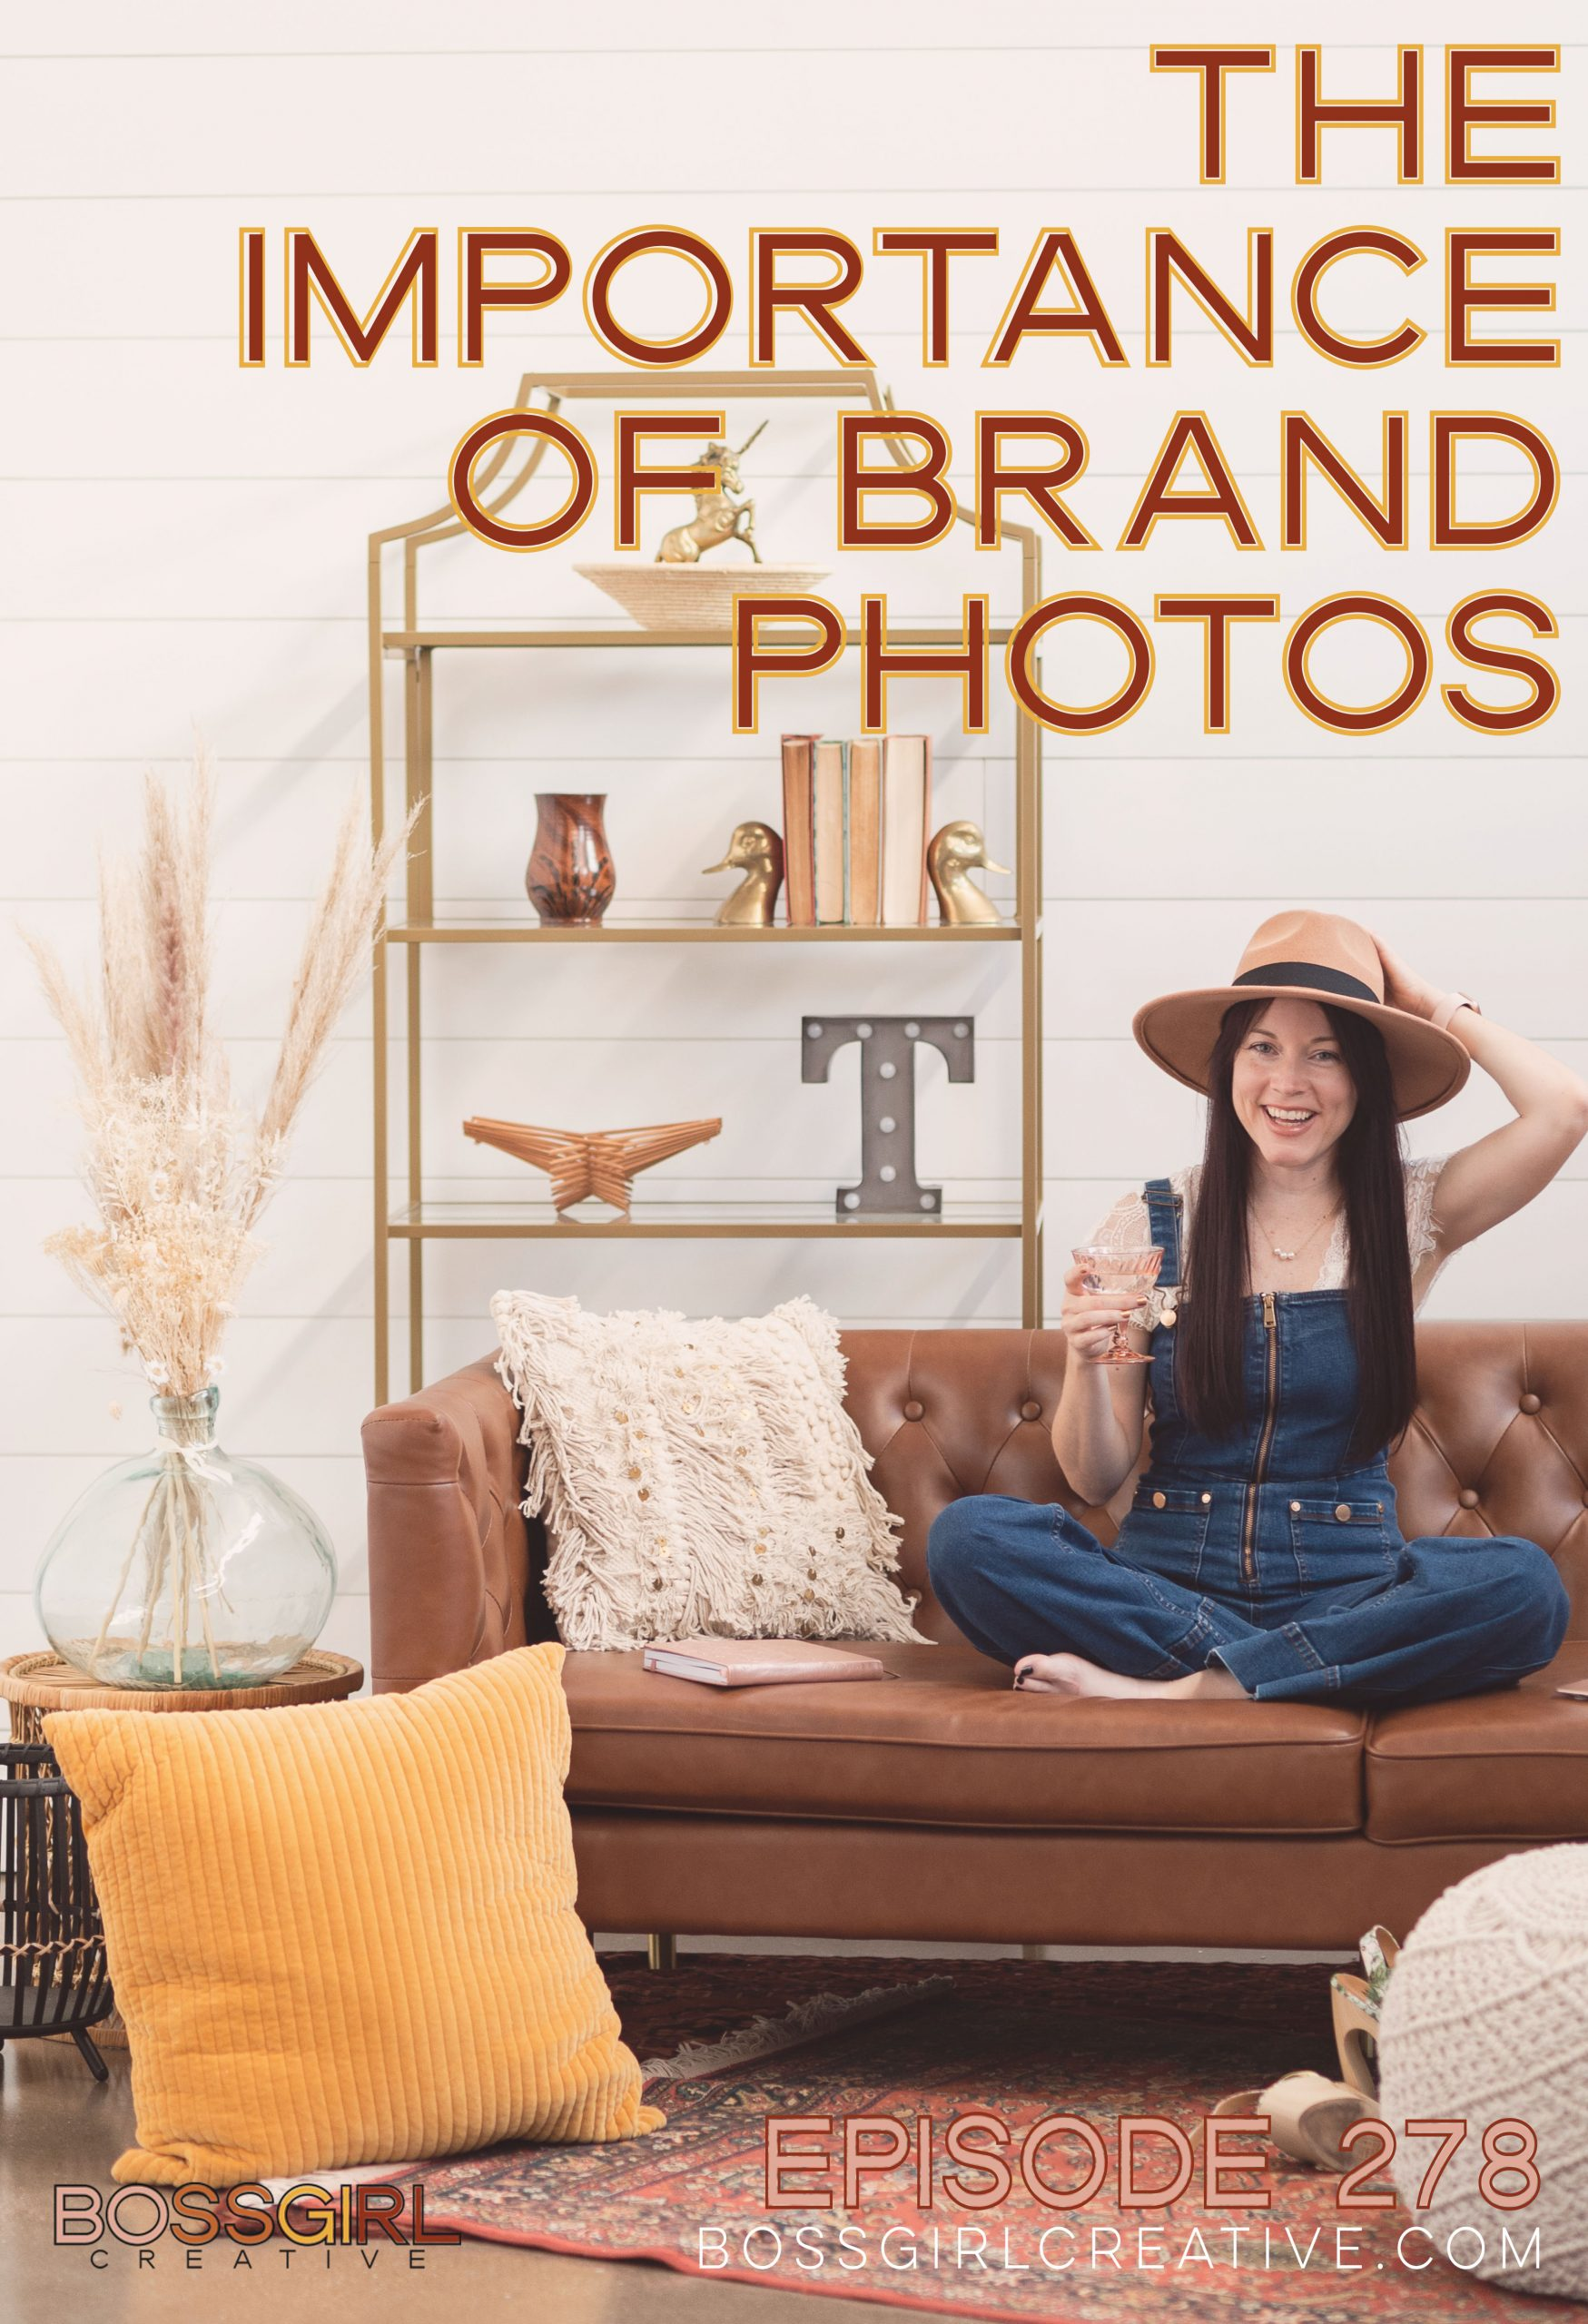 Boss Girl Creative Podcast Episode 278 - The Importance of Brand Photos